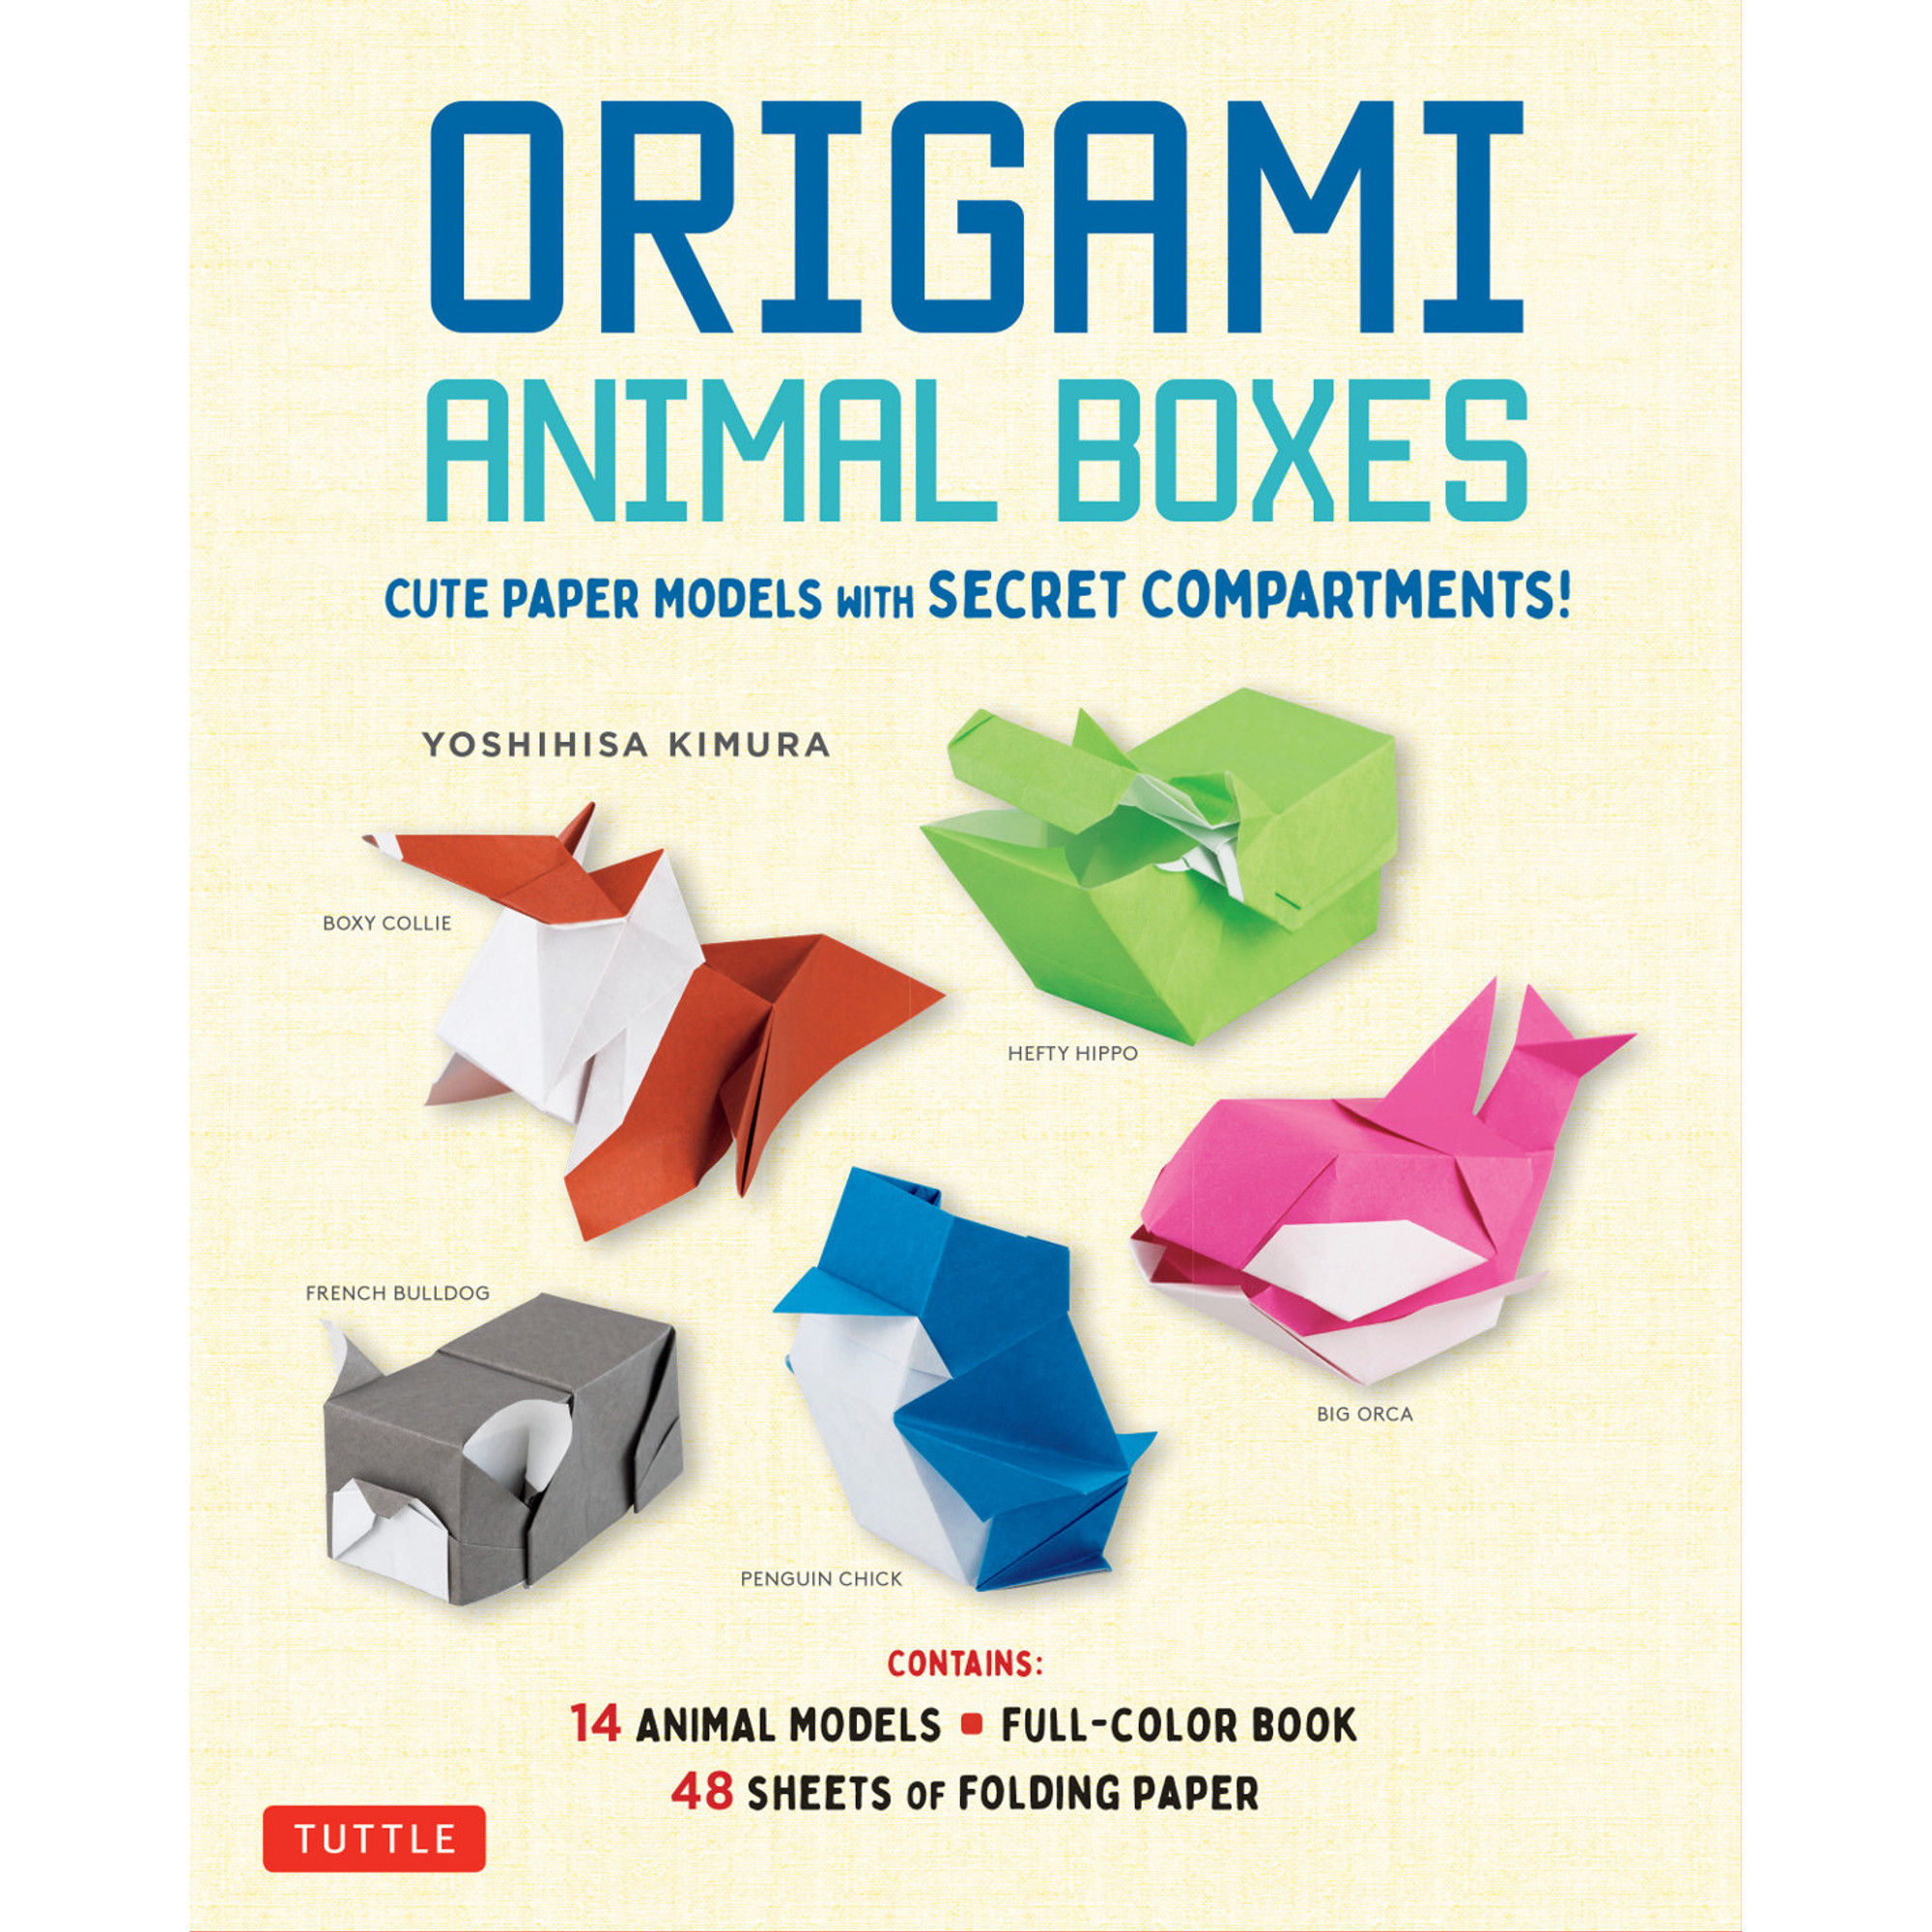 Easy Origami Fish Printable Instructions #1 | Origami shark, Kids ... | 2000x2000